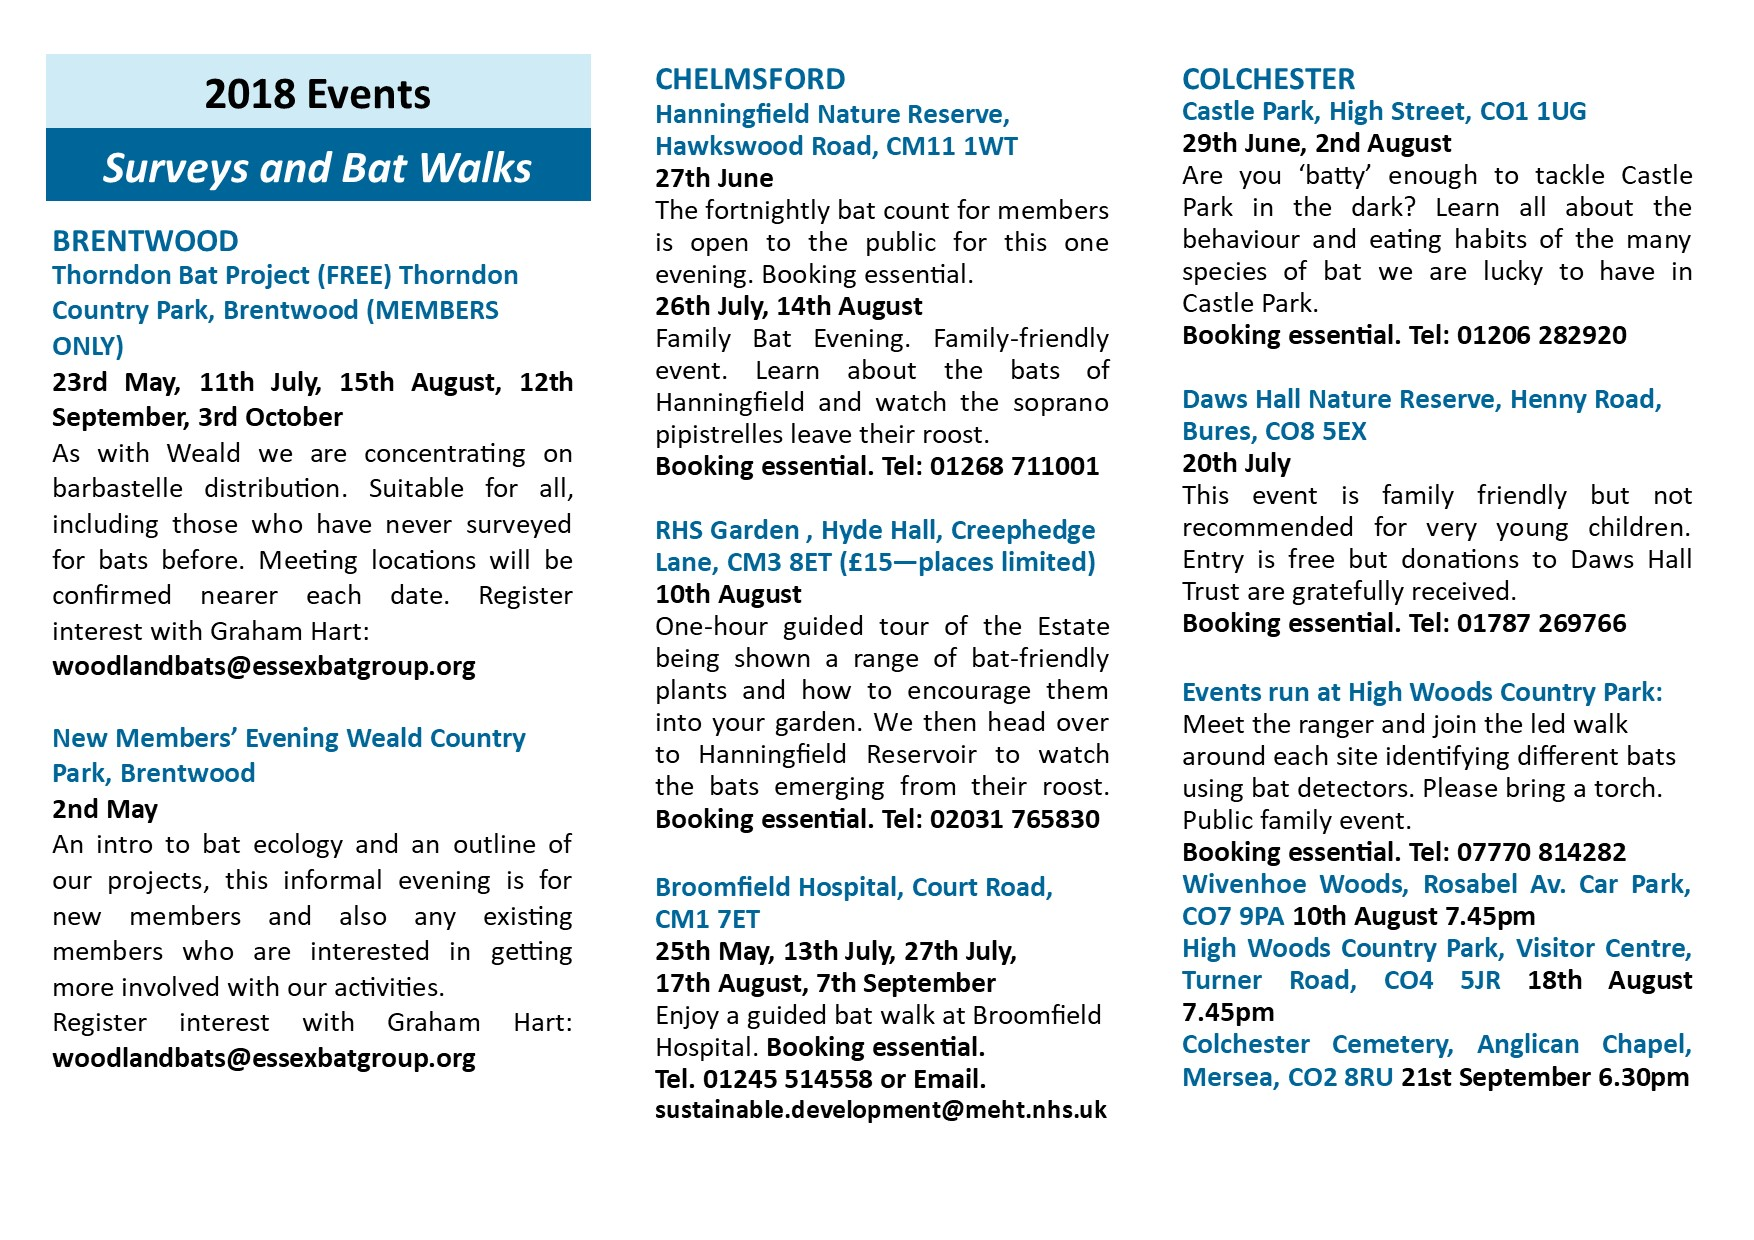 2018 Events Essex Bat Group On Electricity It Walks Kids Through The Nature Of And Our Calendar For Can Be Found Below